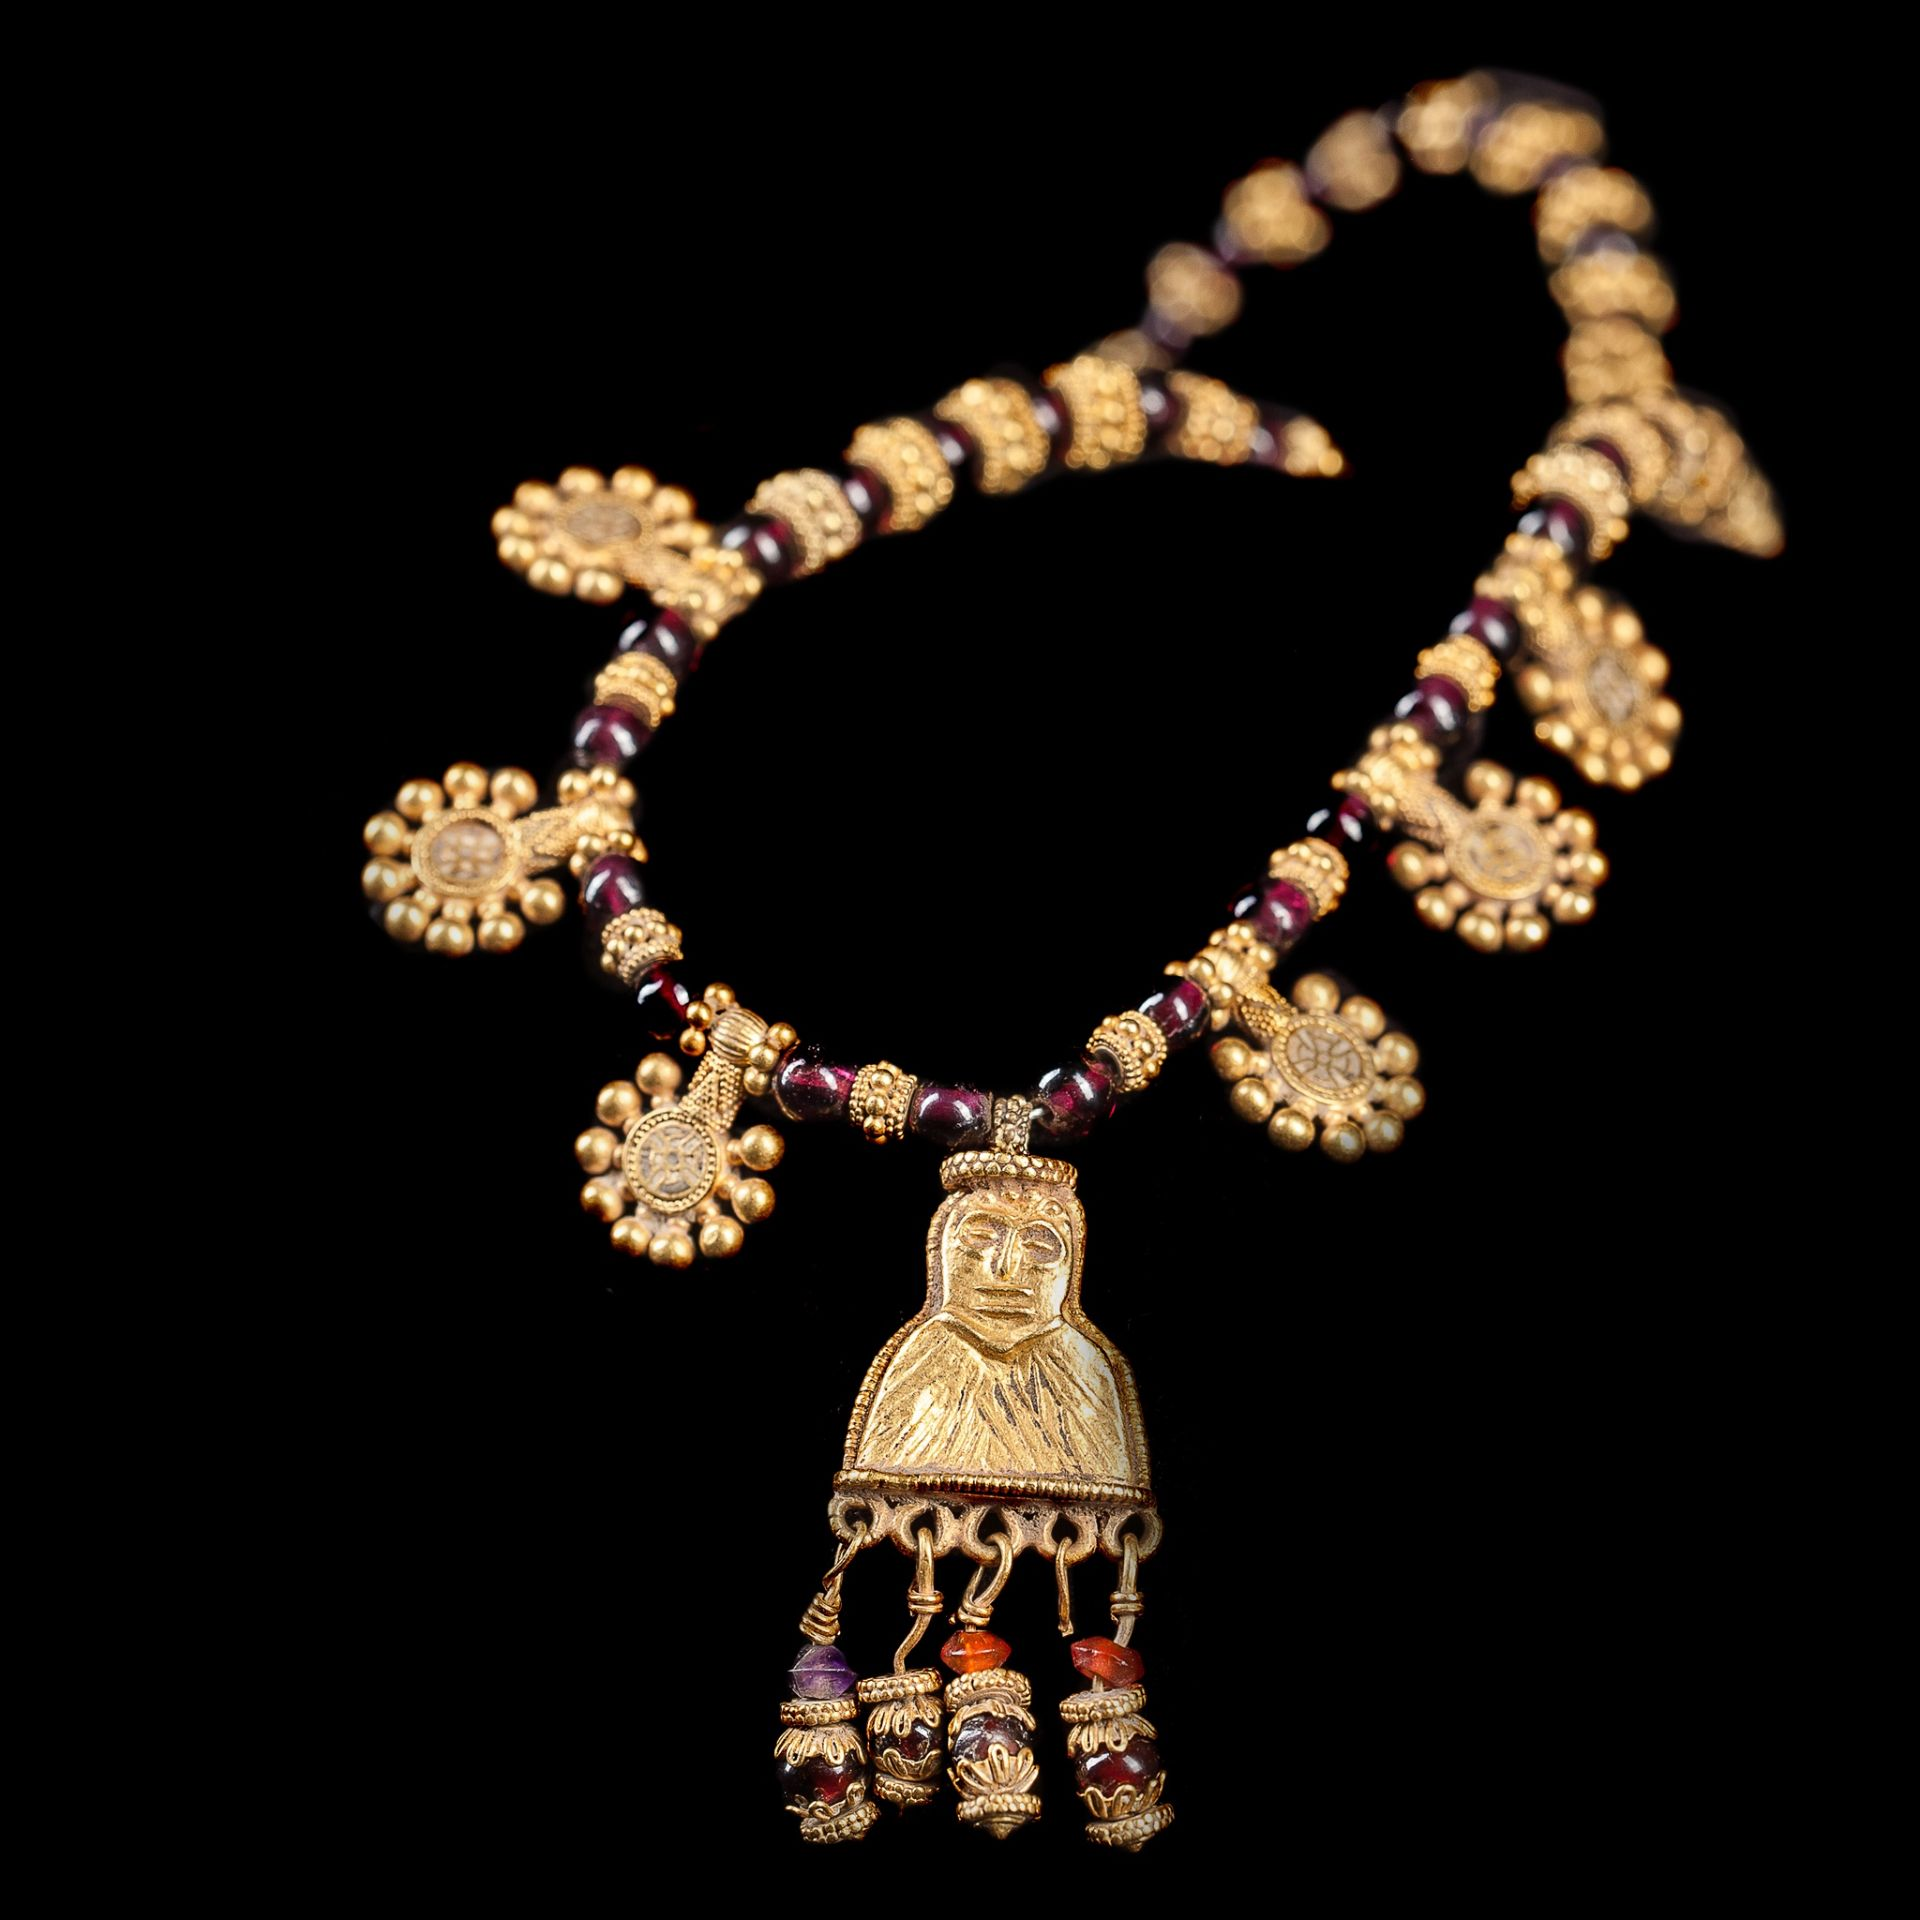 ANCIENT ARABIAN GOLD NECKLACE WITH FEMALE FIGURE PENDANT, LIKELY SABEAN SOUTHERN ARABIA, C. 5TH - - Image 2 of 2